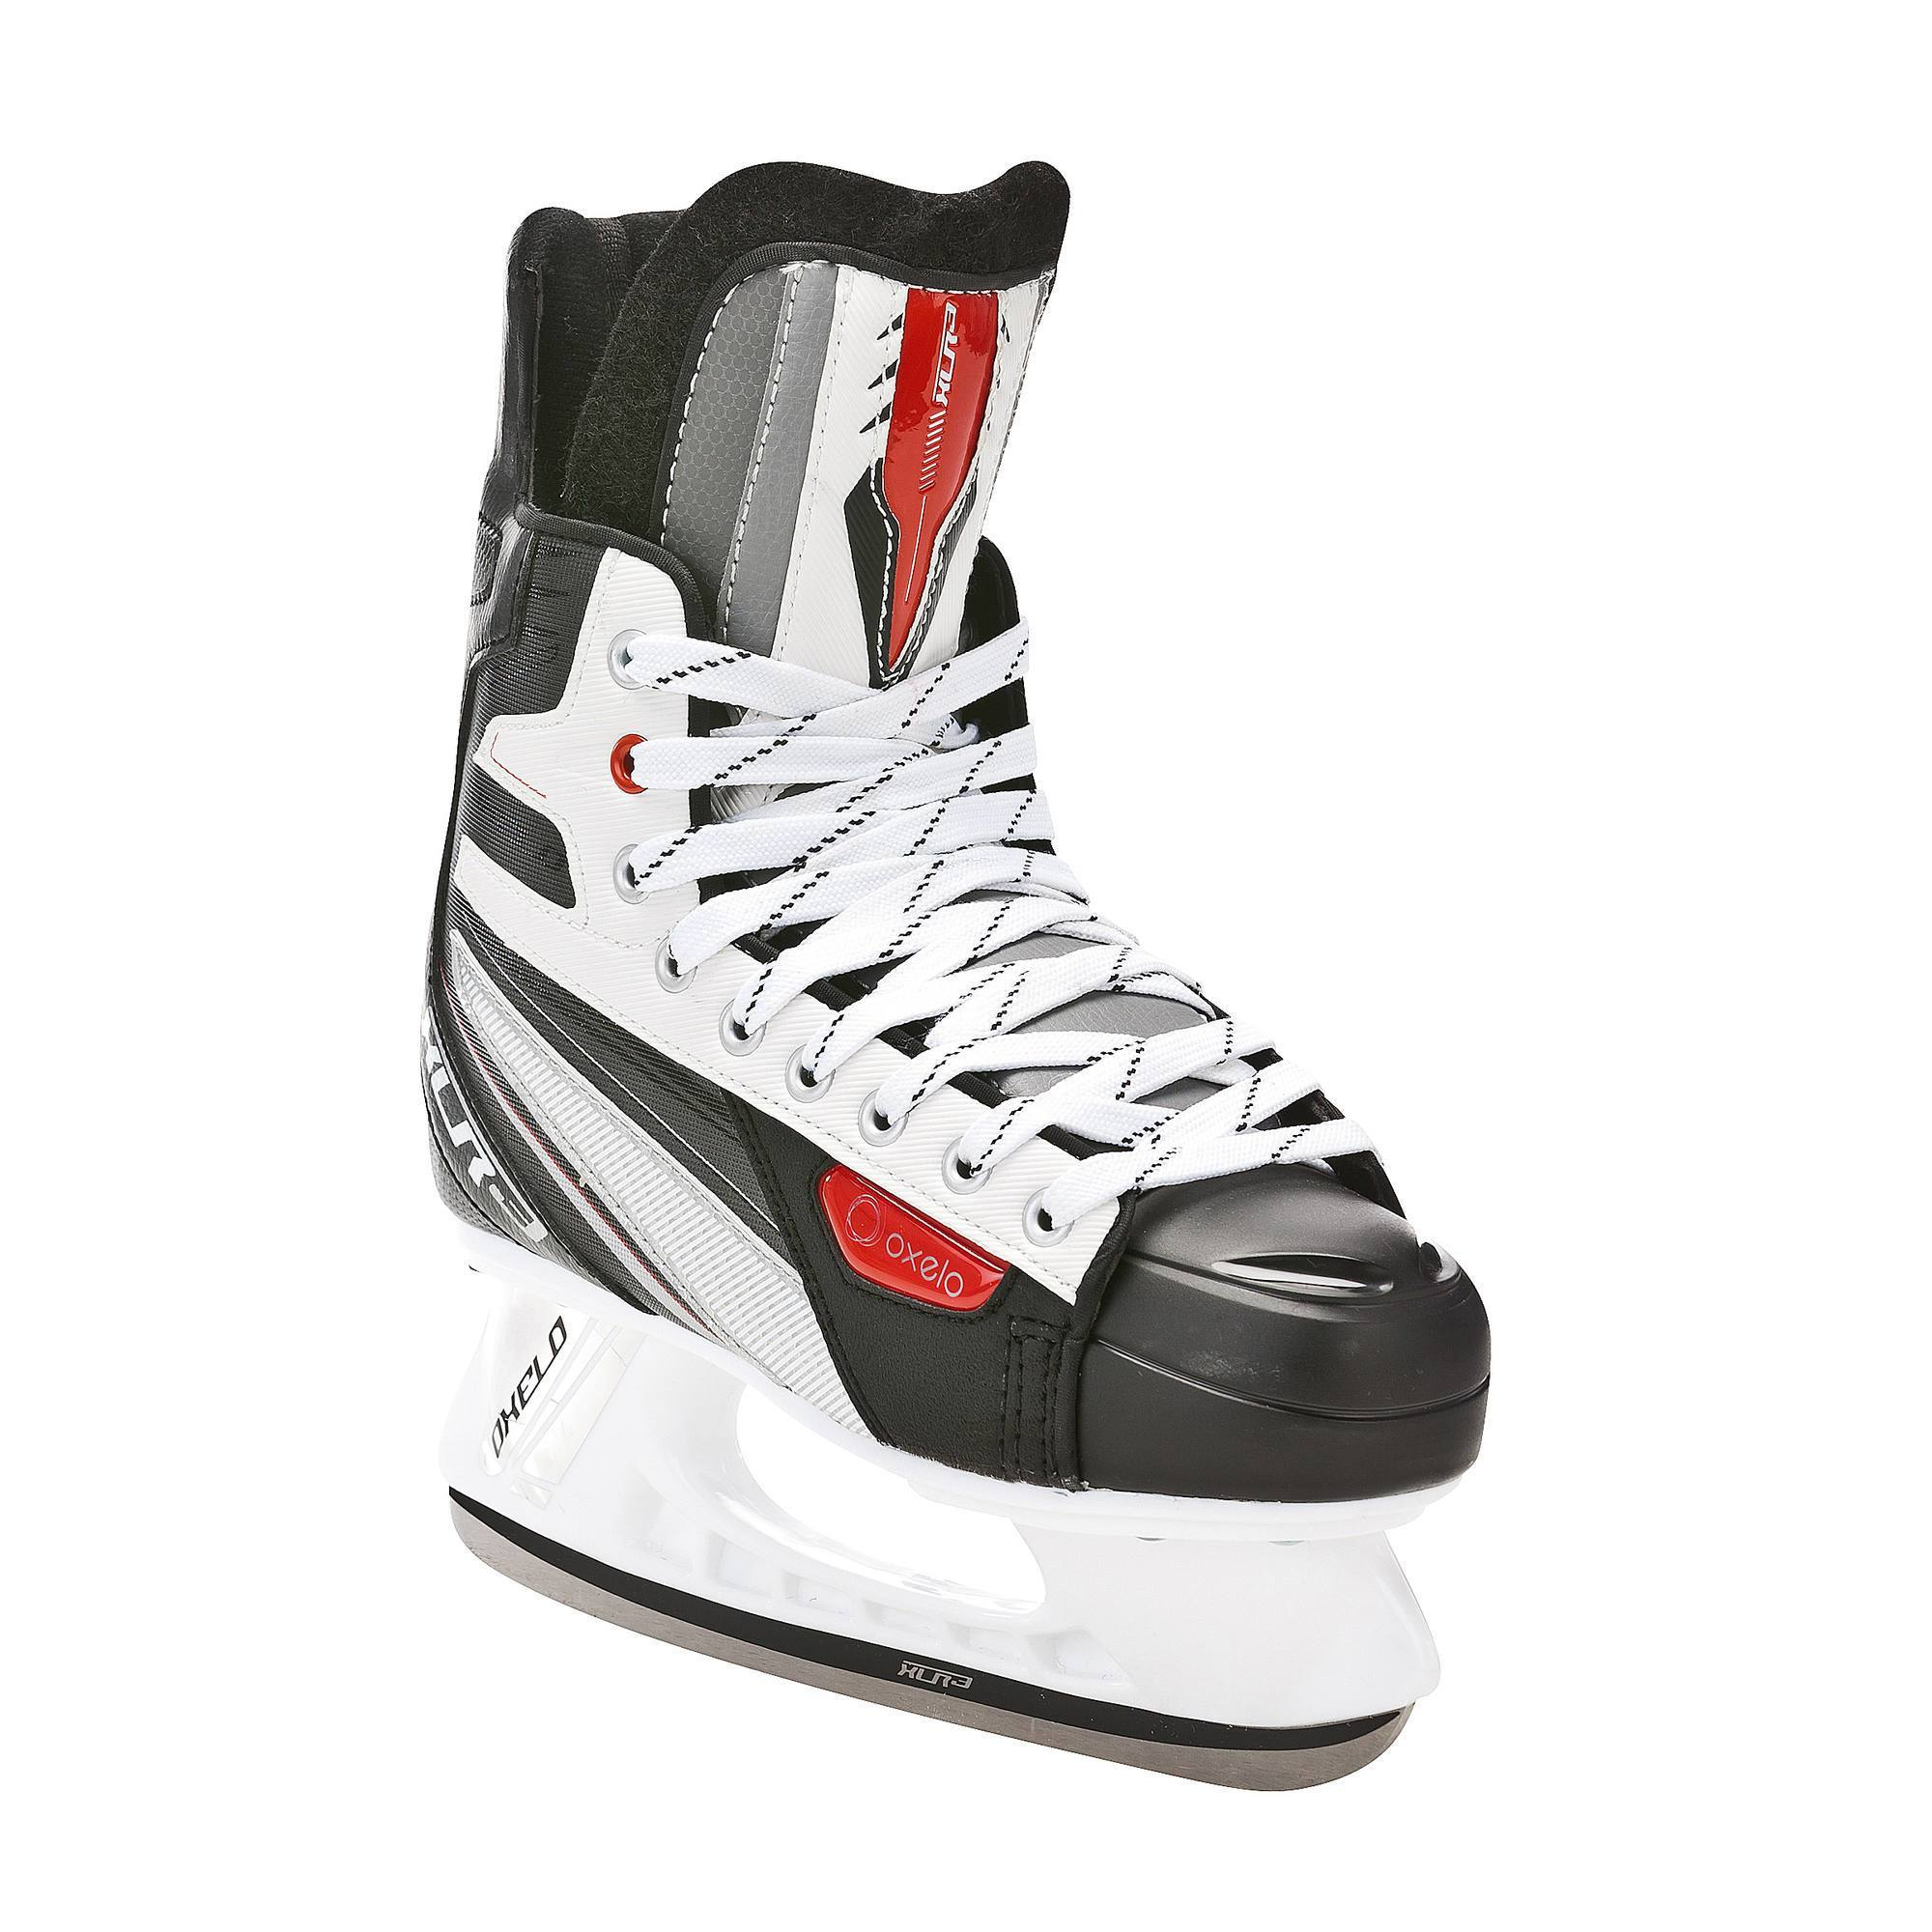 Patin de hockey sur glace adulte XLR3